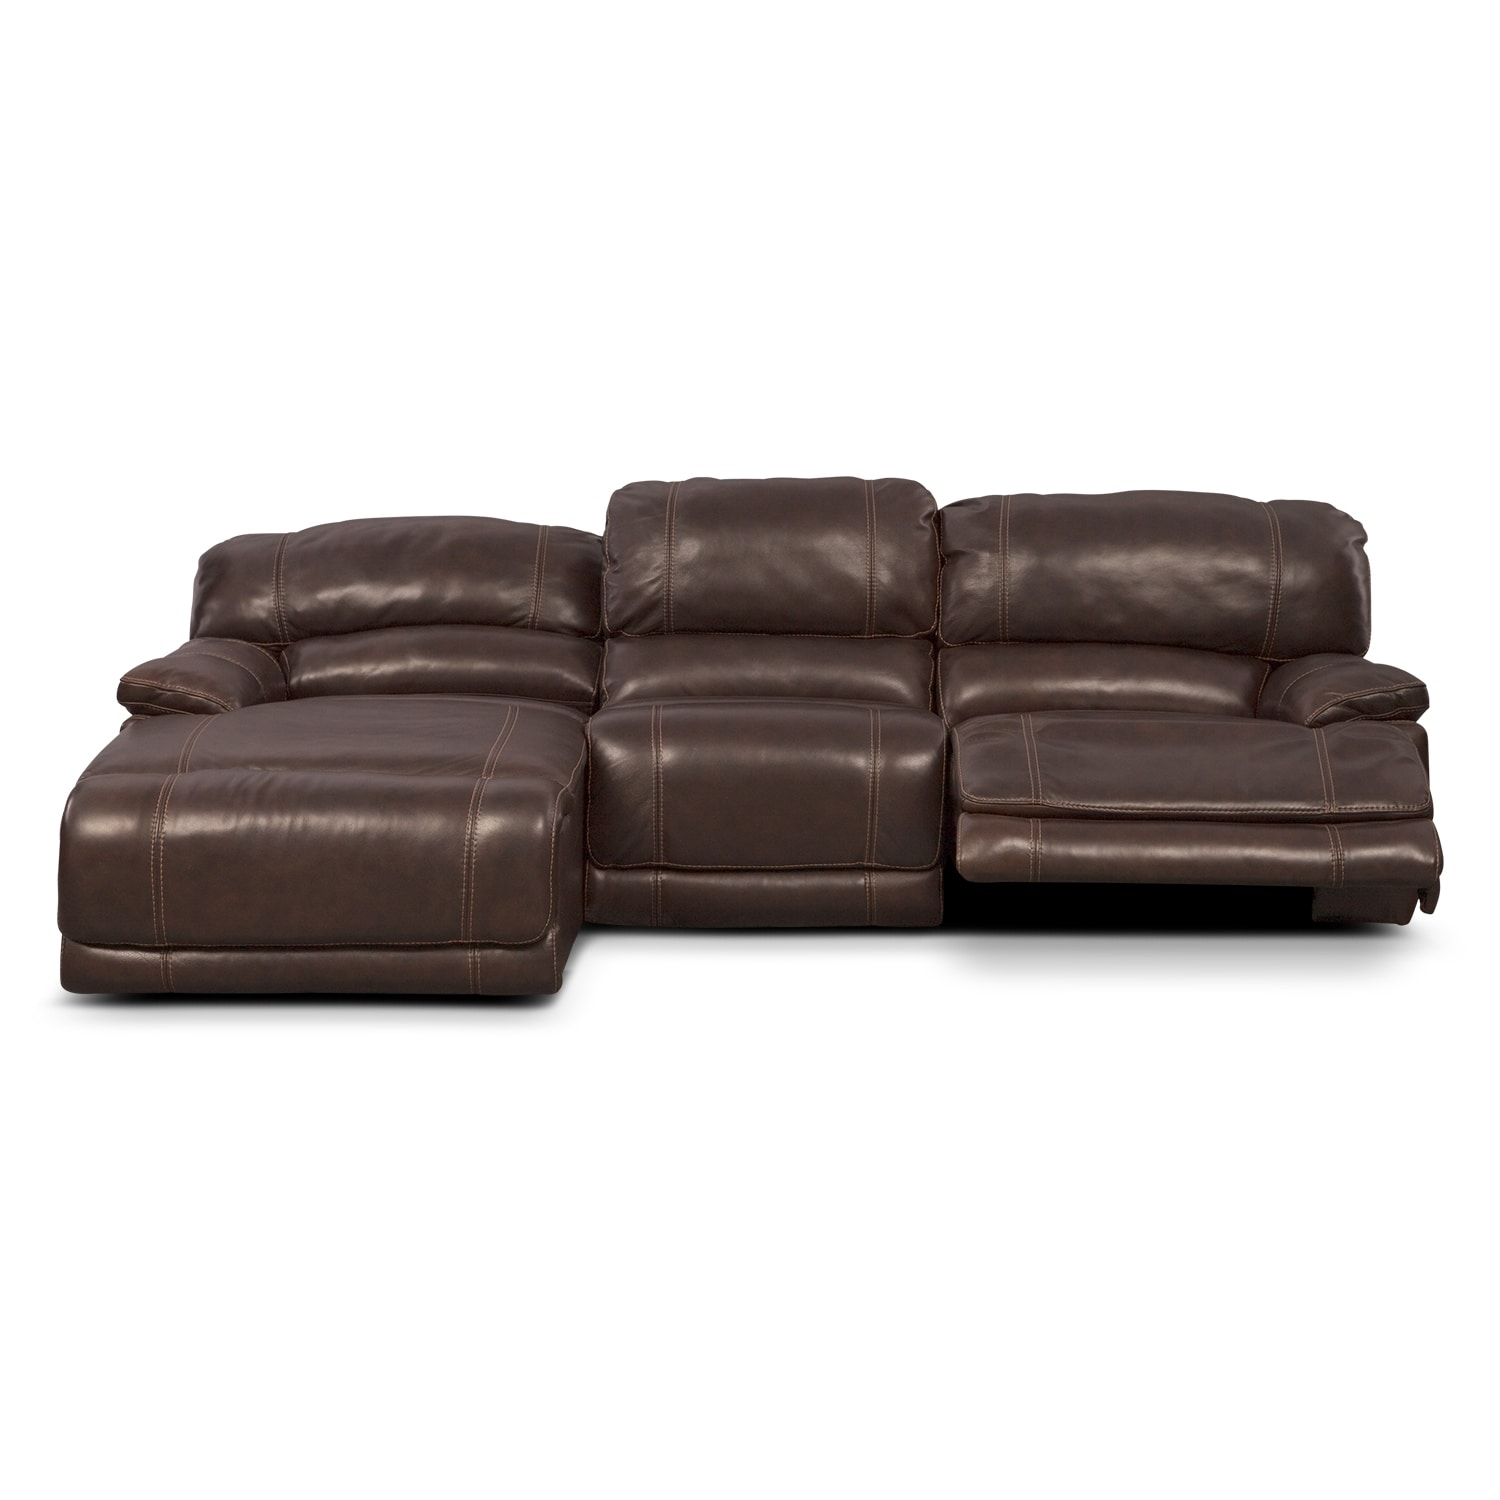 St malo 3 piece power reclining sectional with left for Brown sectional with chaise